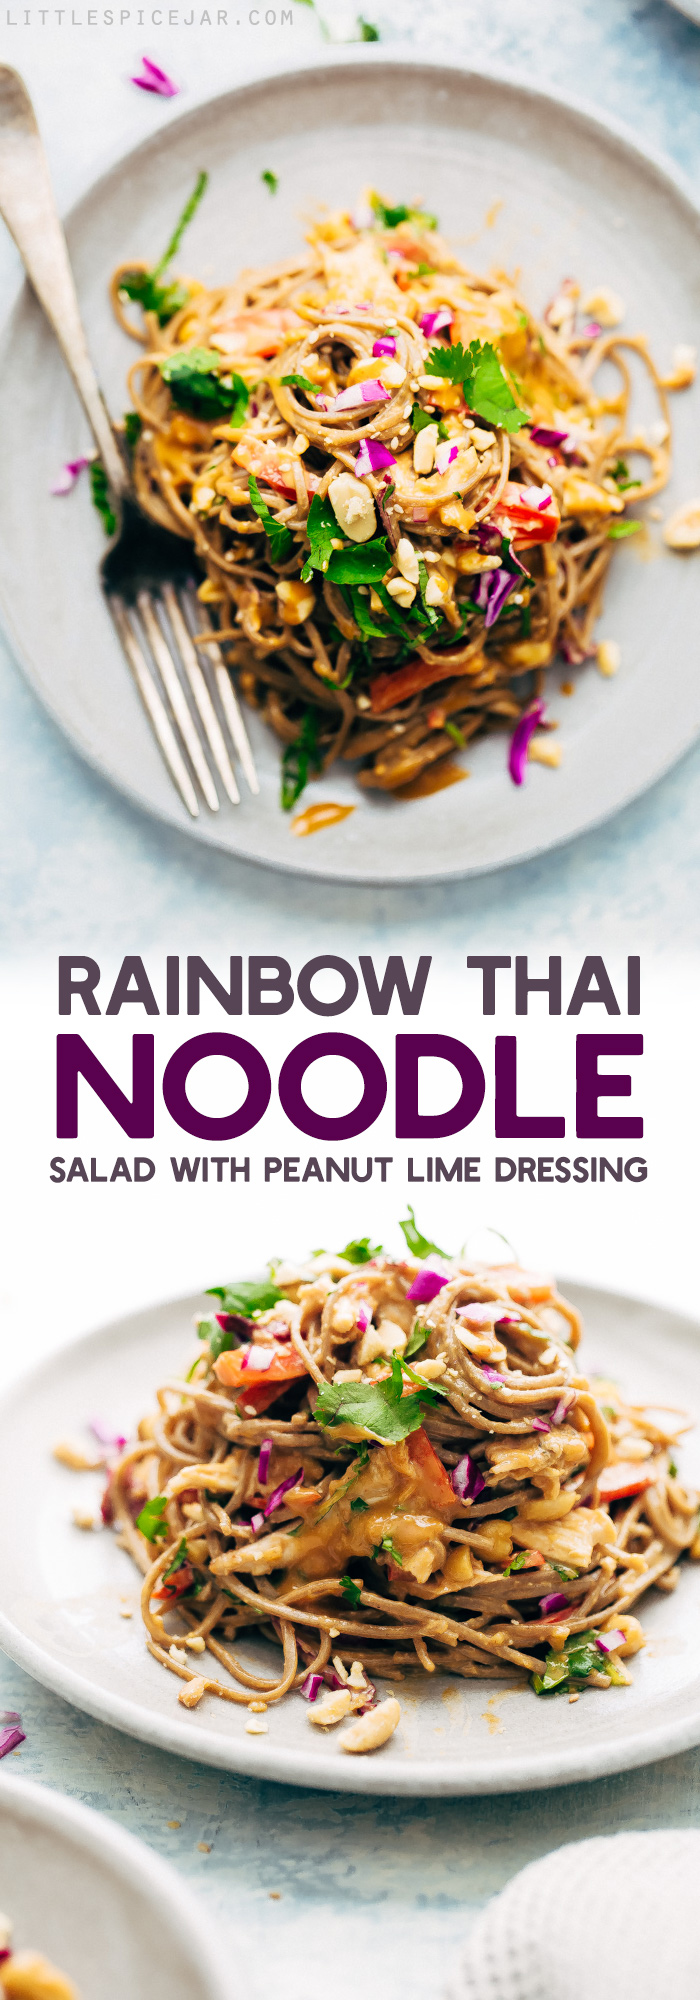 Rainbow Thai Noodle Salad with Peanut Lime Dressing - A quick, weeknight friendly noodle salad with homemade dressing, shredded chicken, tons of herbs, and lots of veggies! #sobanoodlesalad #thainoodlesalad #noodlesalad #pastasalad #thaisalad #thaichickensalad | Littlespicejar.com